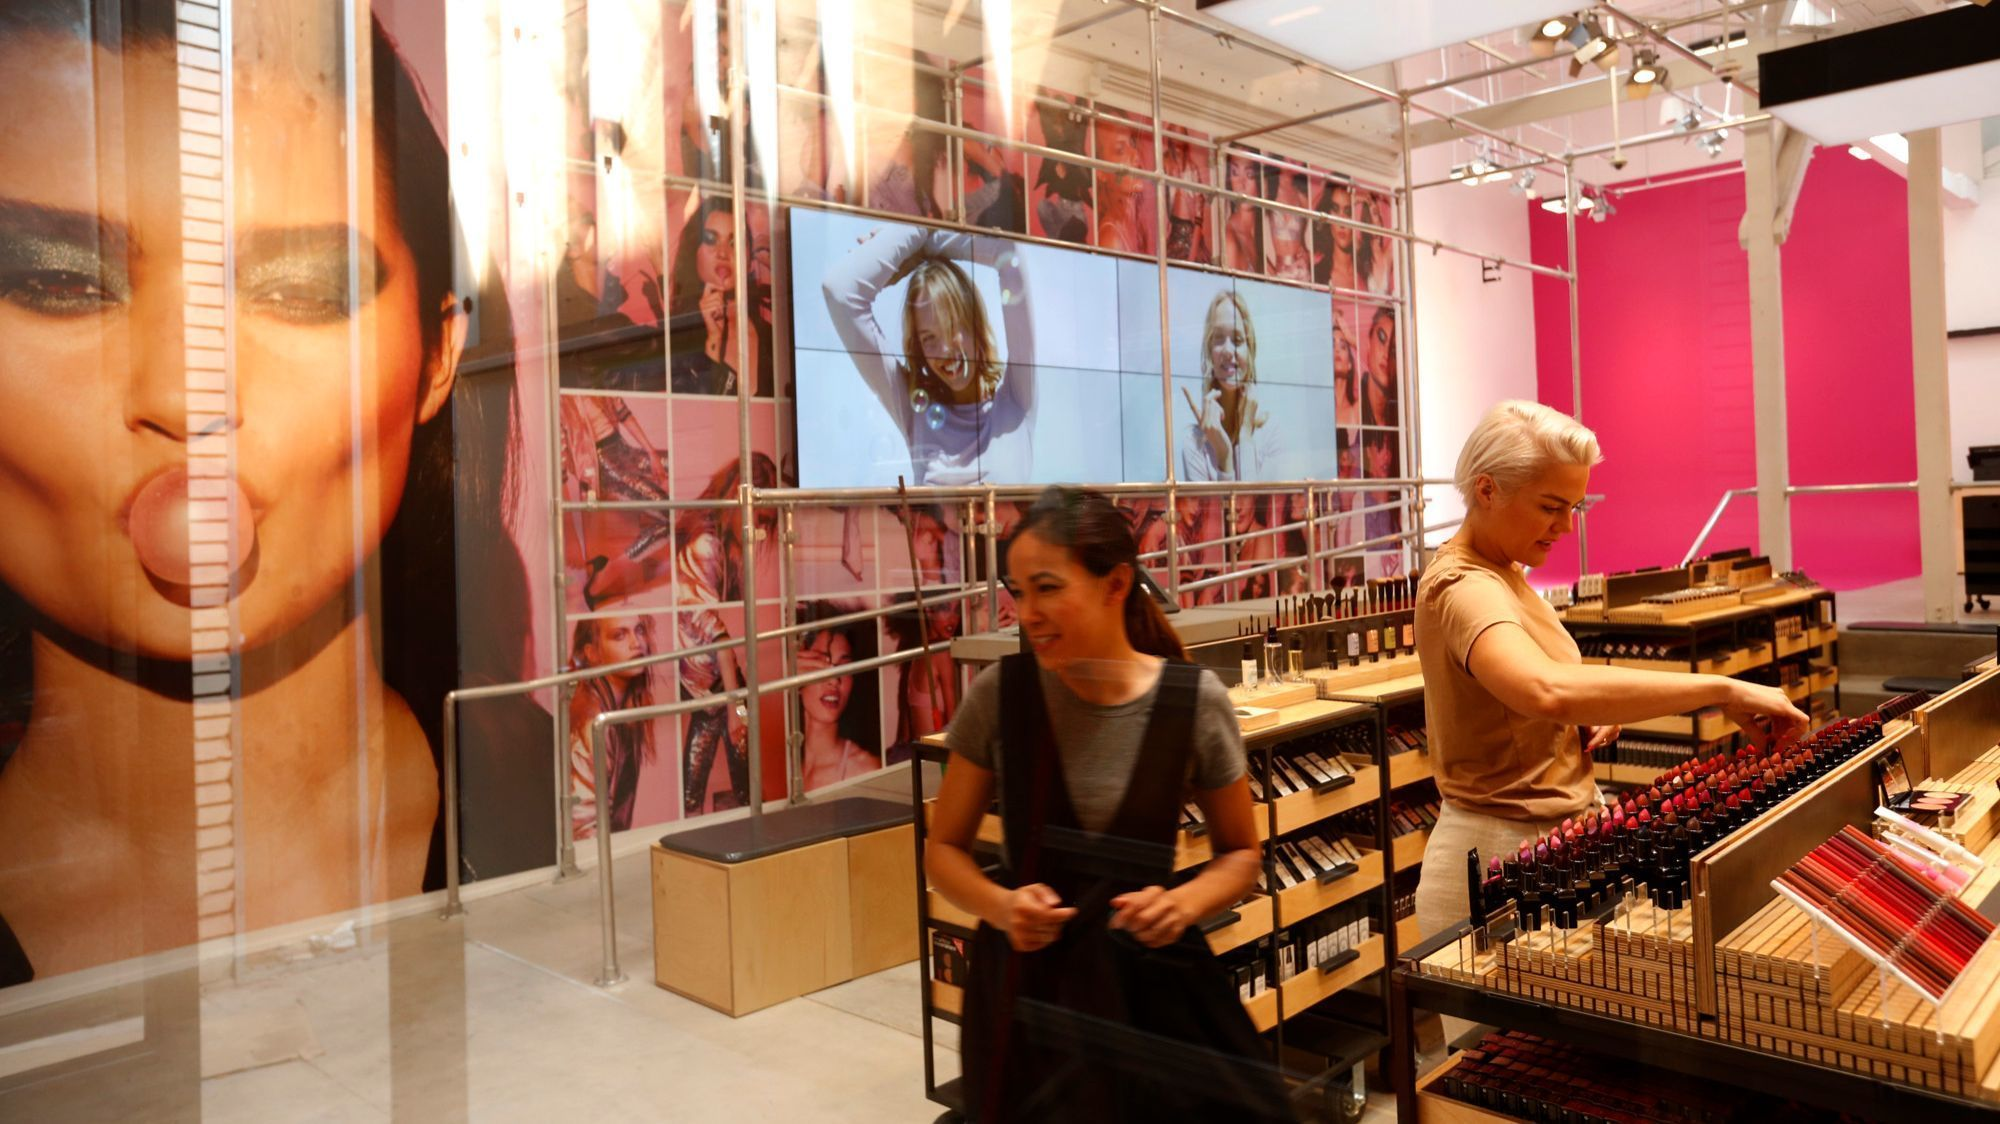 Marlo Messer, left, and Aubrie Slater prepare the new Smashbox store for its recent opening in Venice.